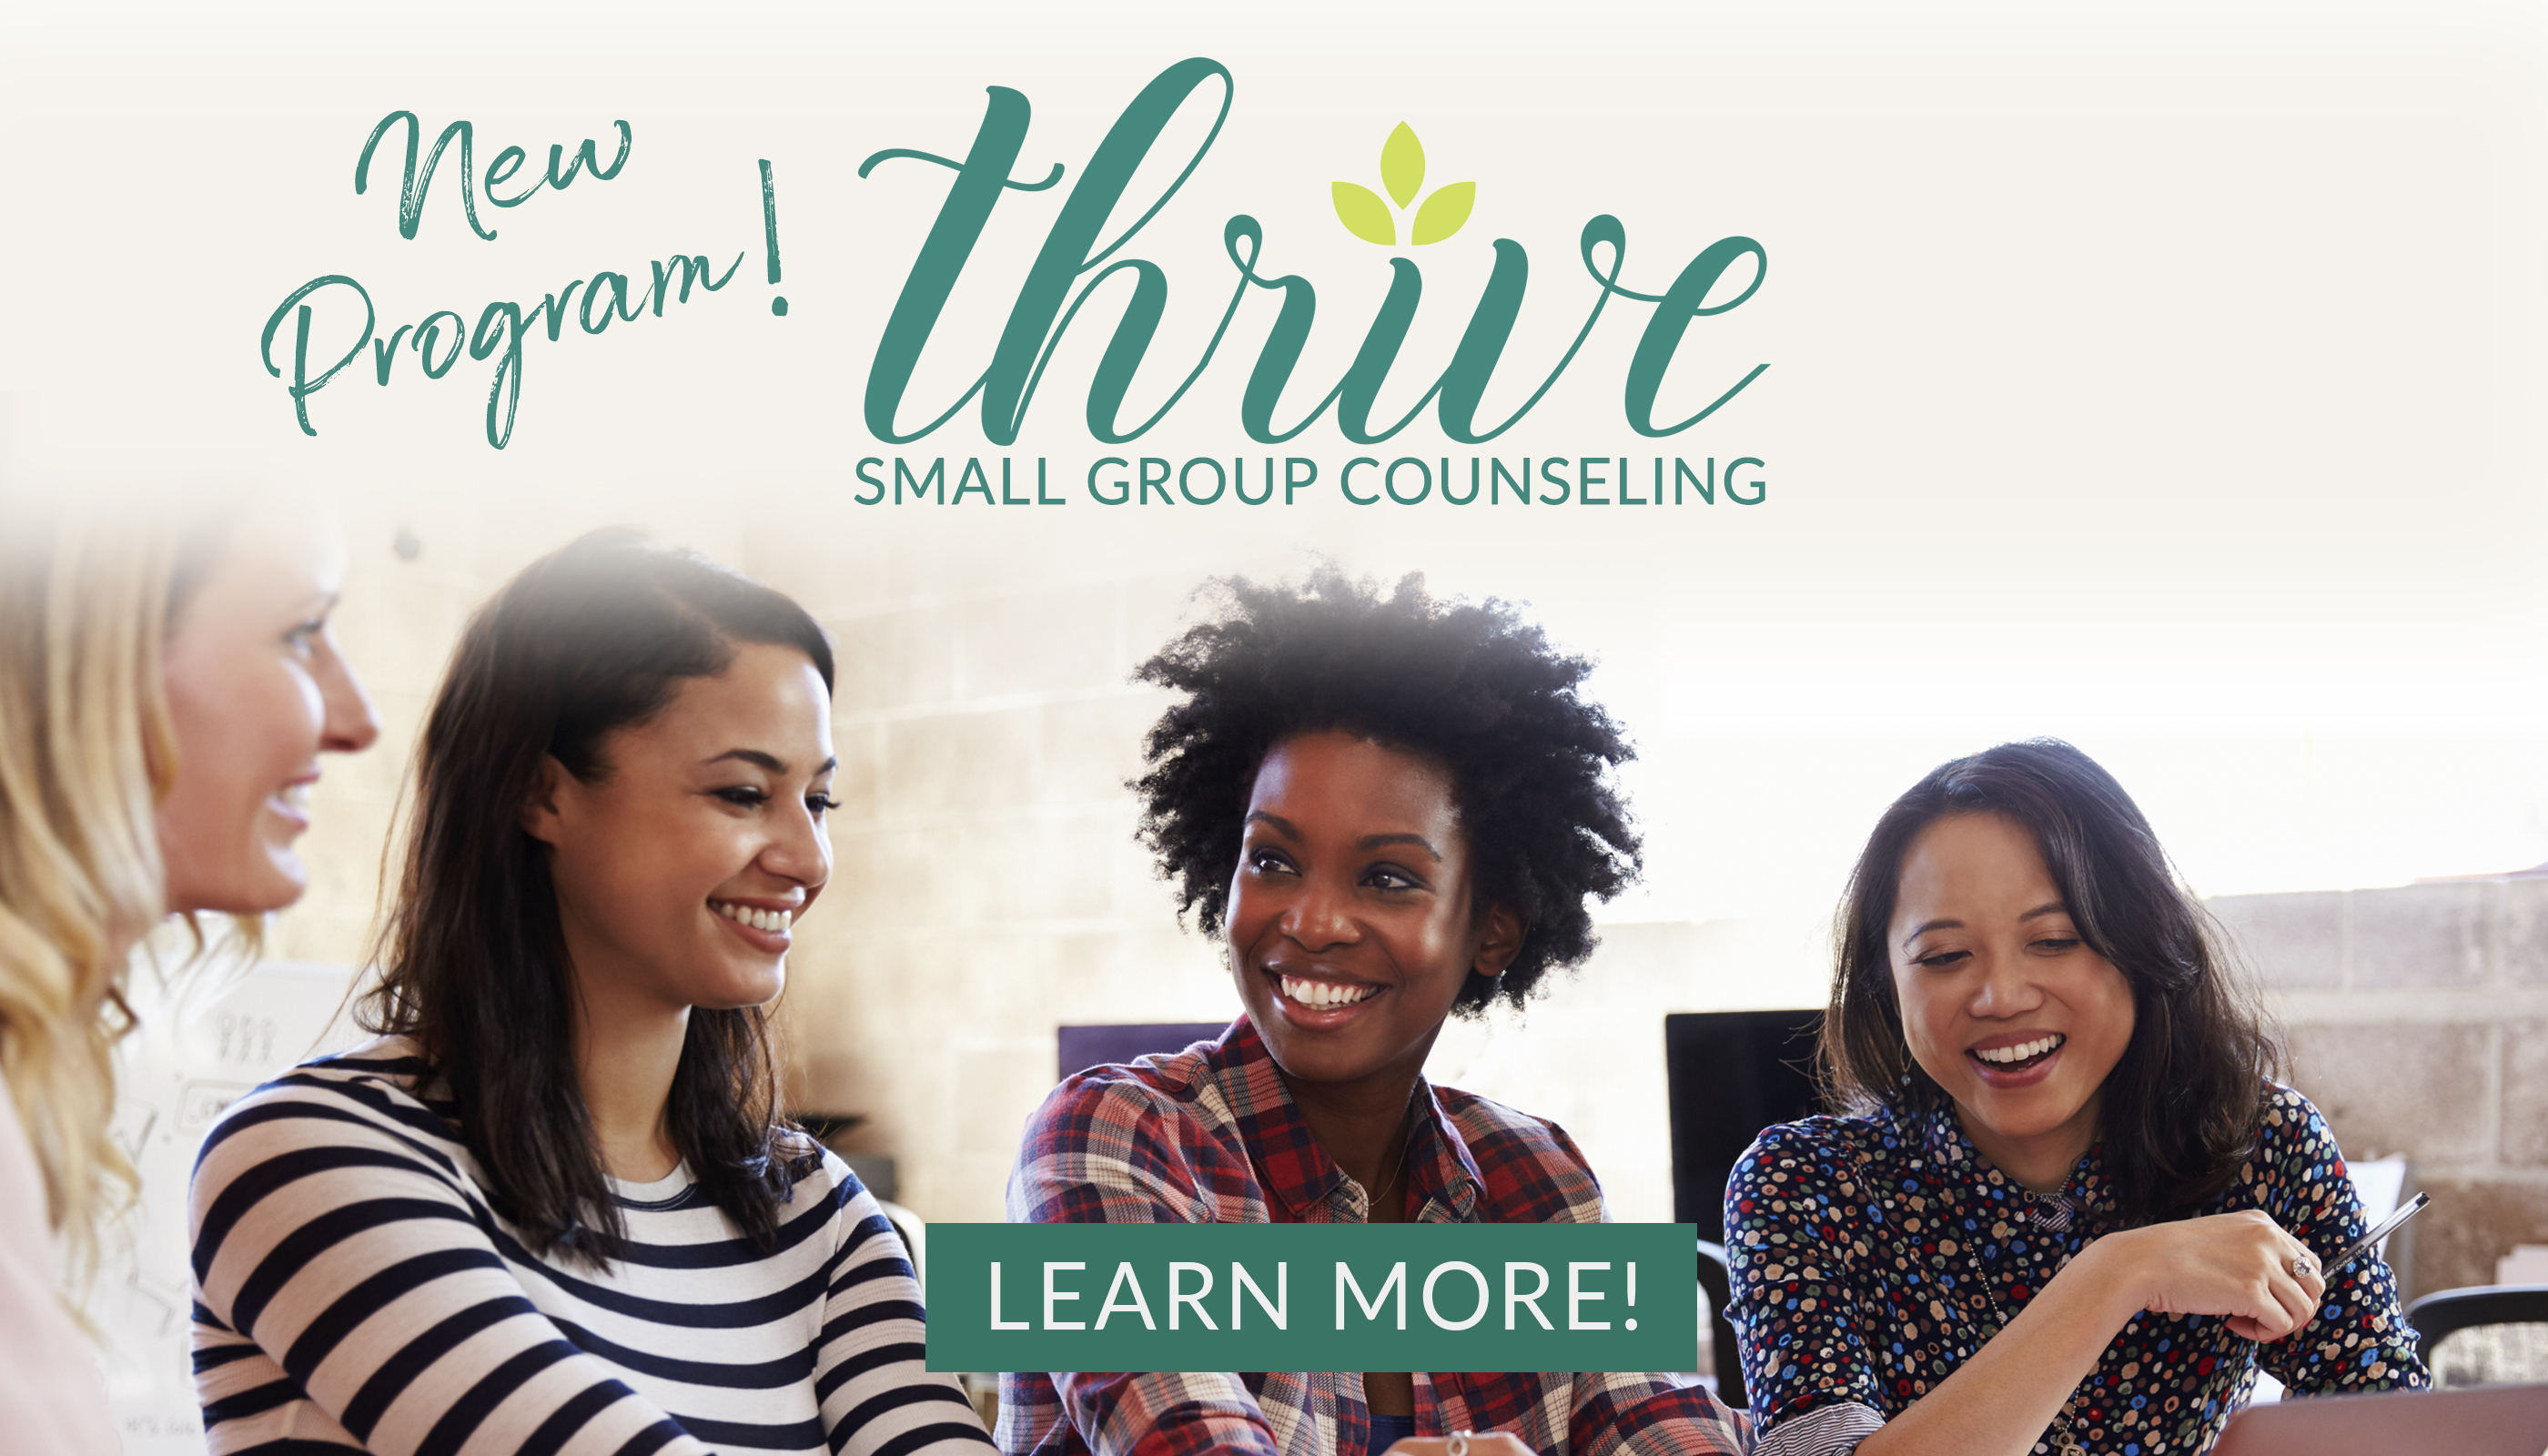 https://marriagerecoverycenter.com/wp-content/uploads/2018/08/Thrive-Group-Counseling-event-calendar-graphic.jpg